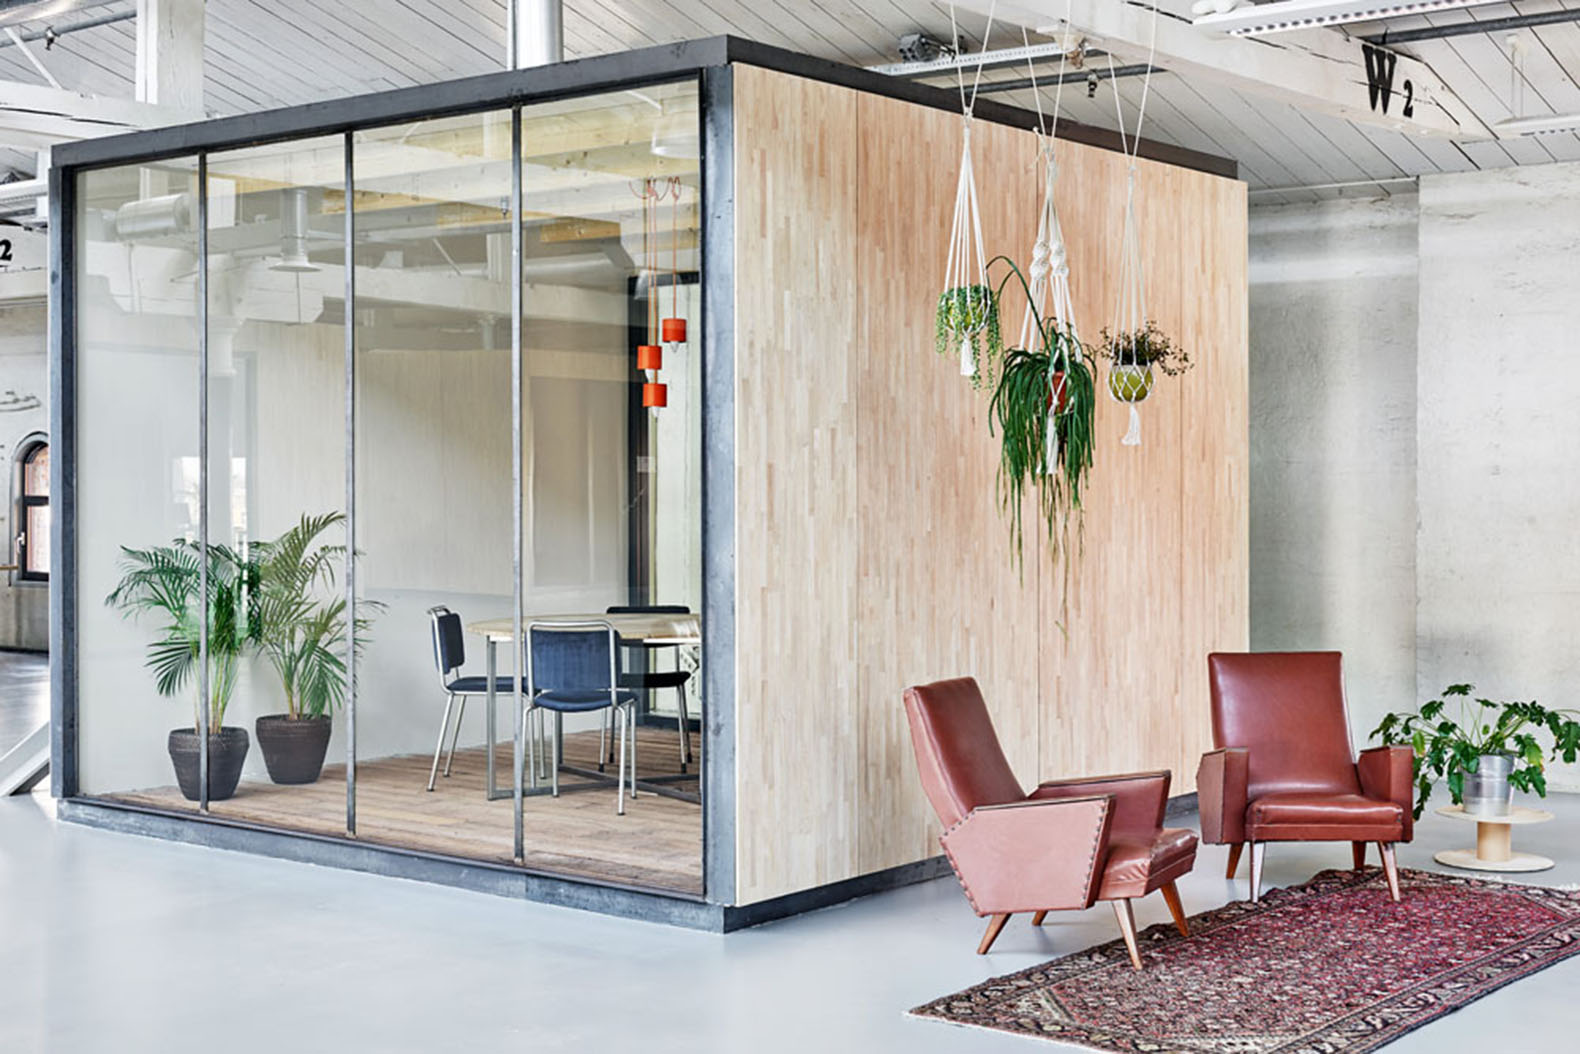 Fairphones Amsterdam Offices Built Inside An Old Warehouse Using Reclaimed Materials Fairphone Melinda Delst Interior Design And Studio Modderman